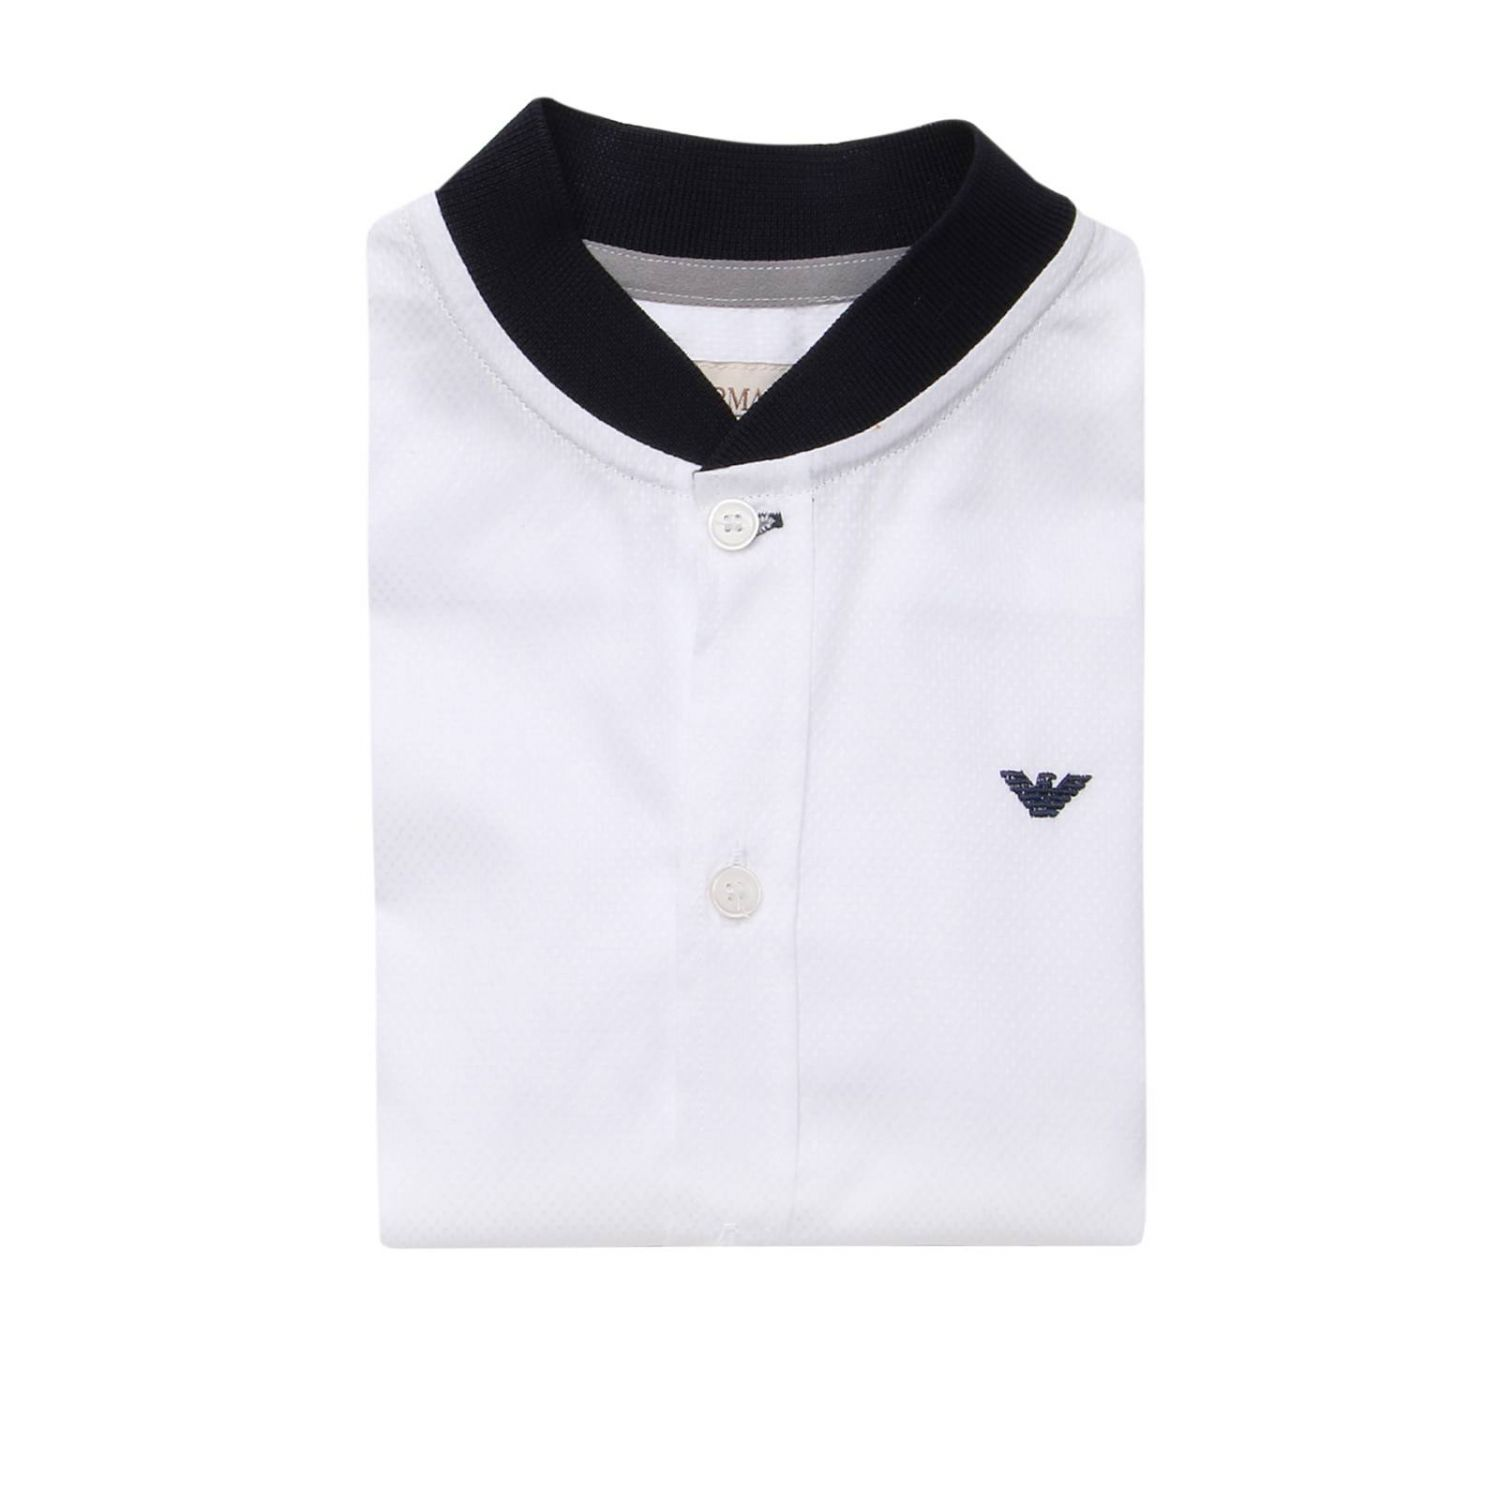 Shirt kids Armani Junior white 1